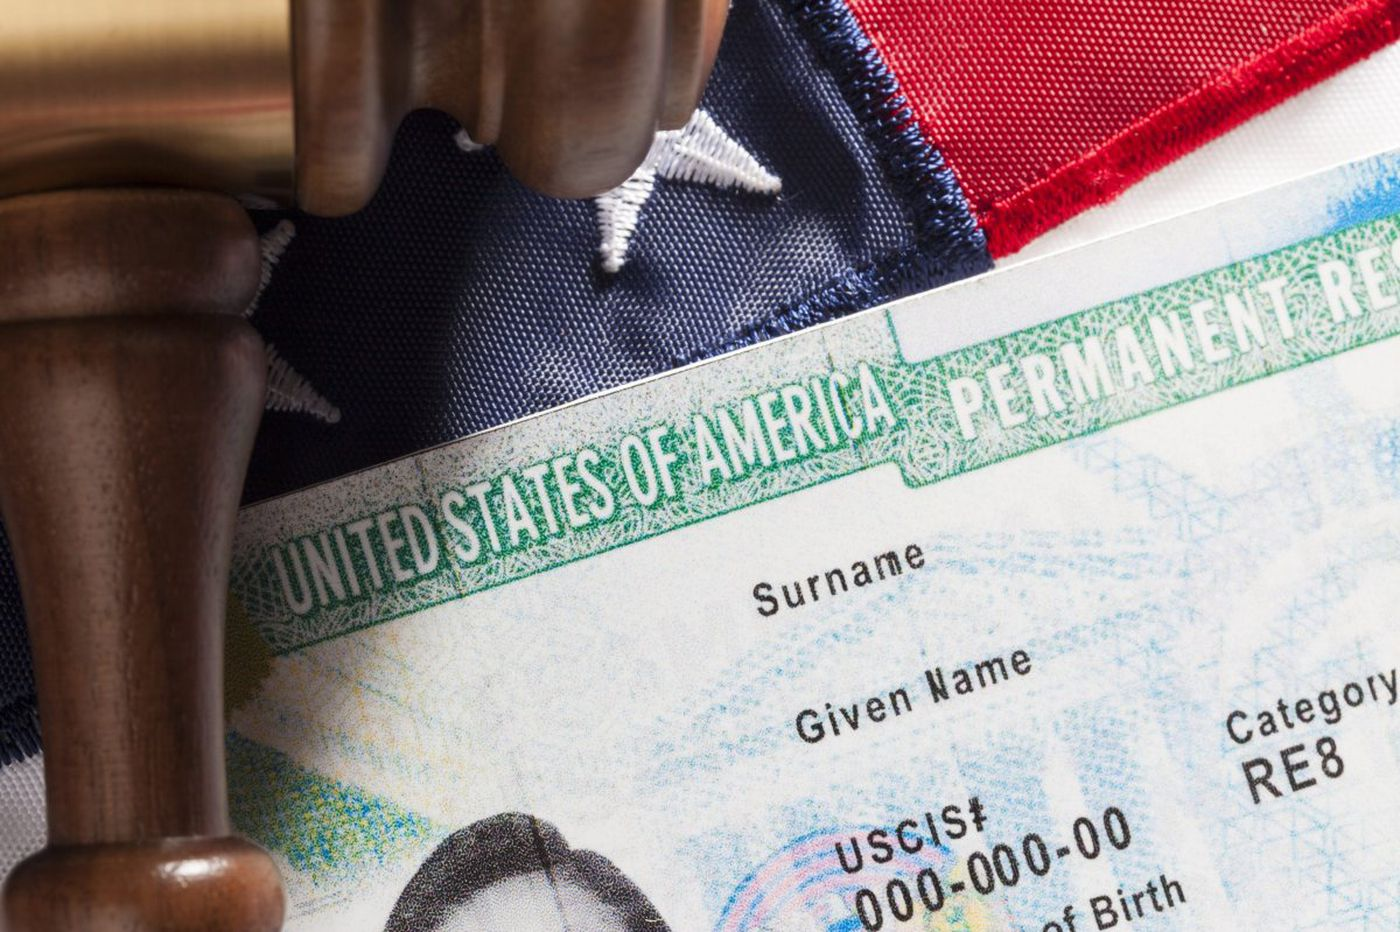 How long after I get my green card can I divorce?